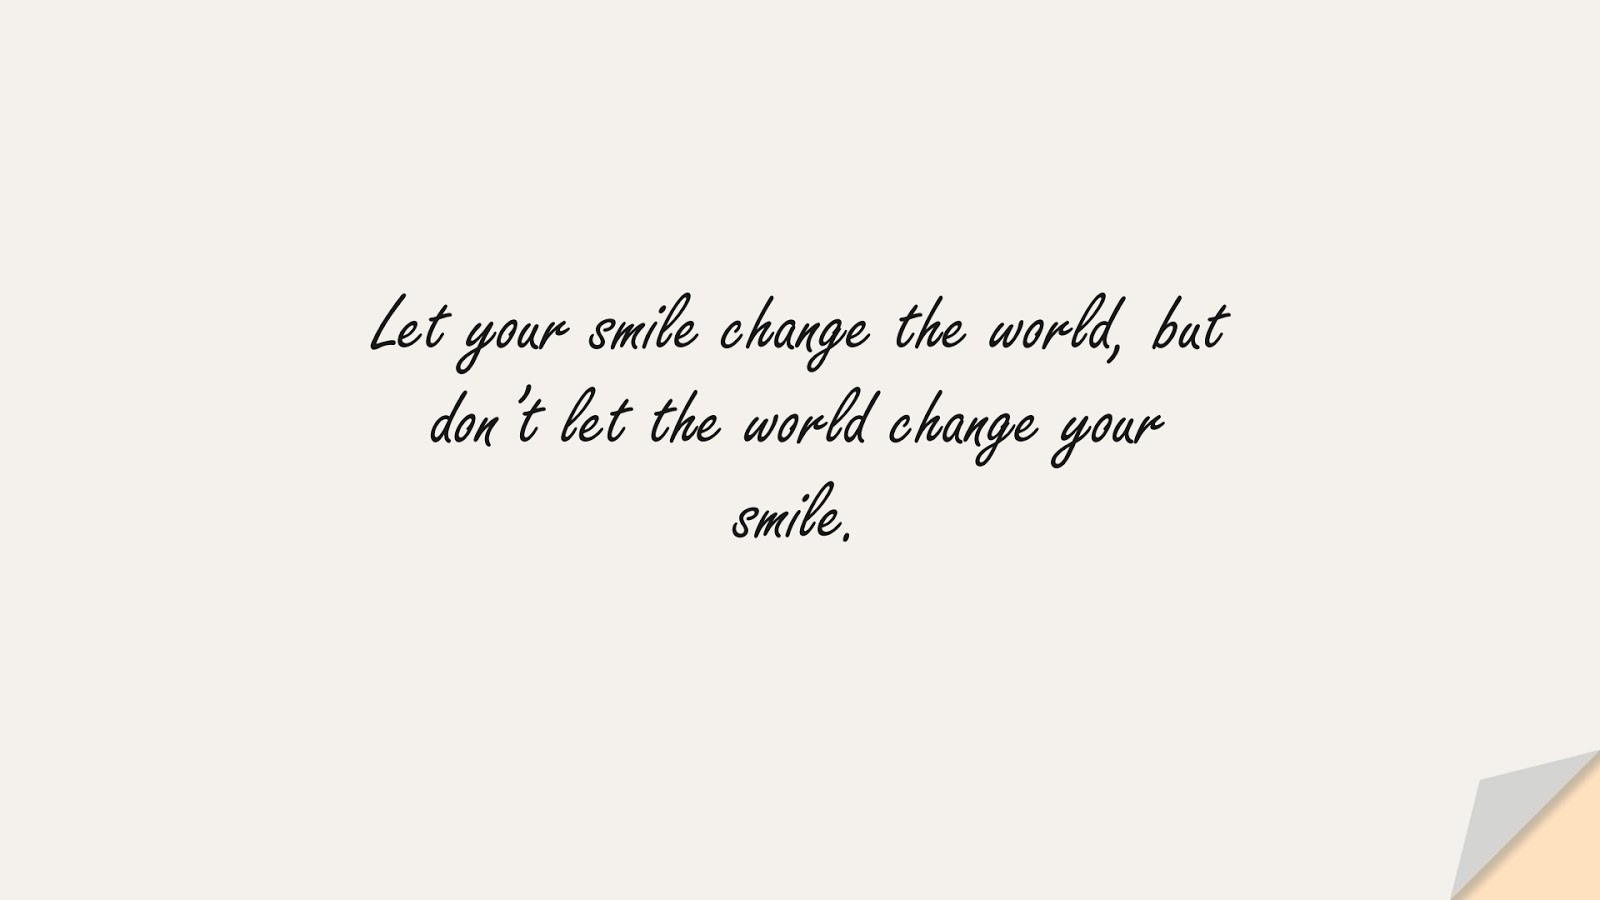 Let your smile change the world, but don't let the world change your smile.FALSE